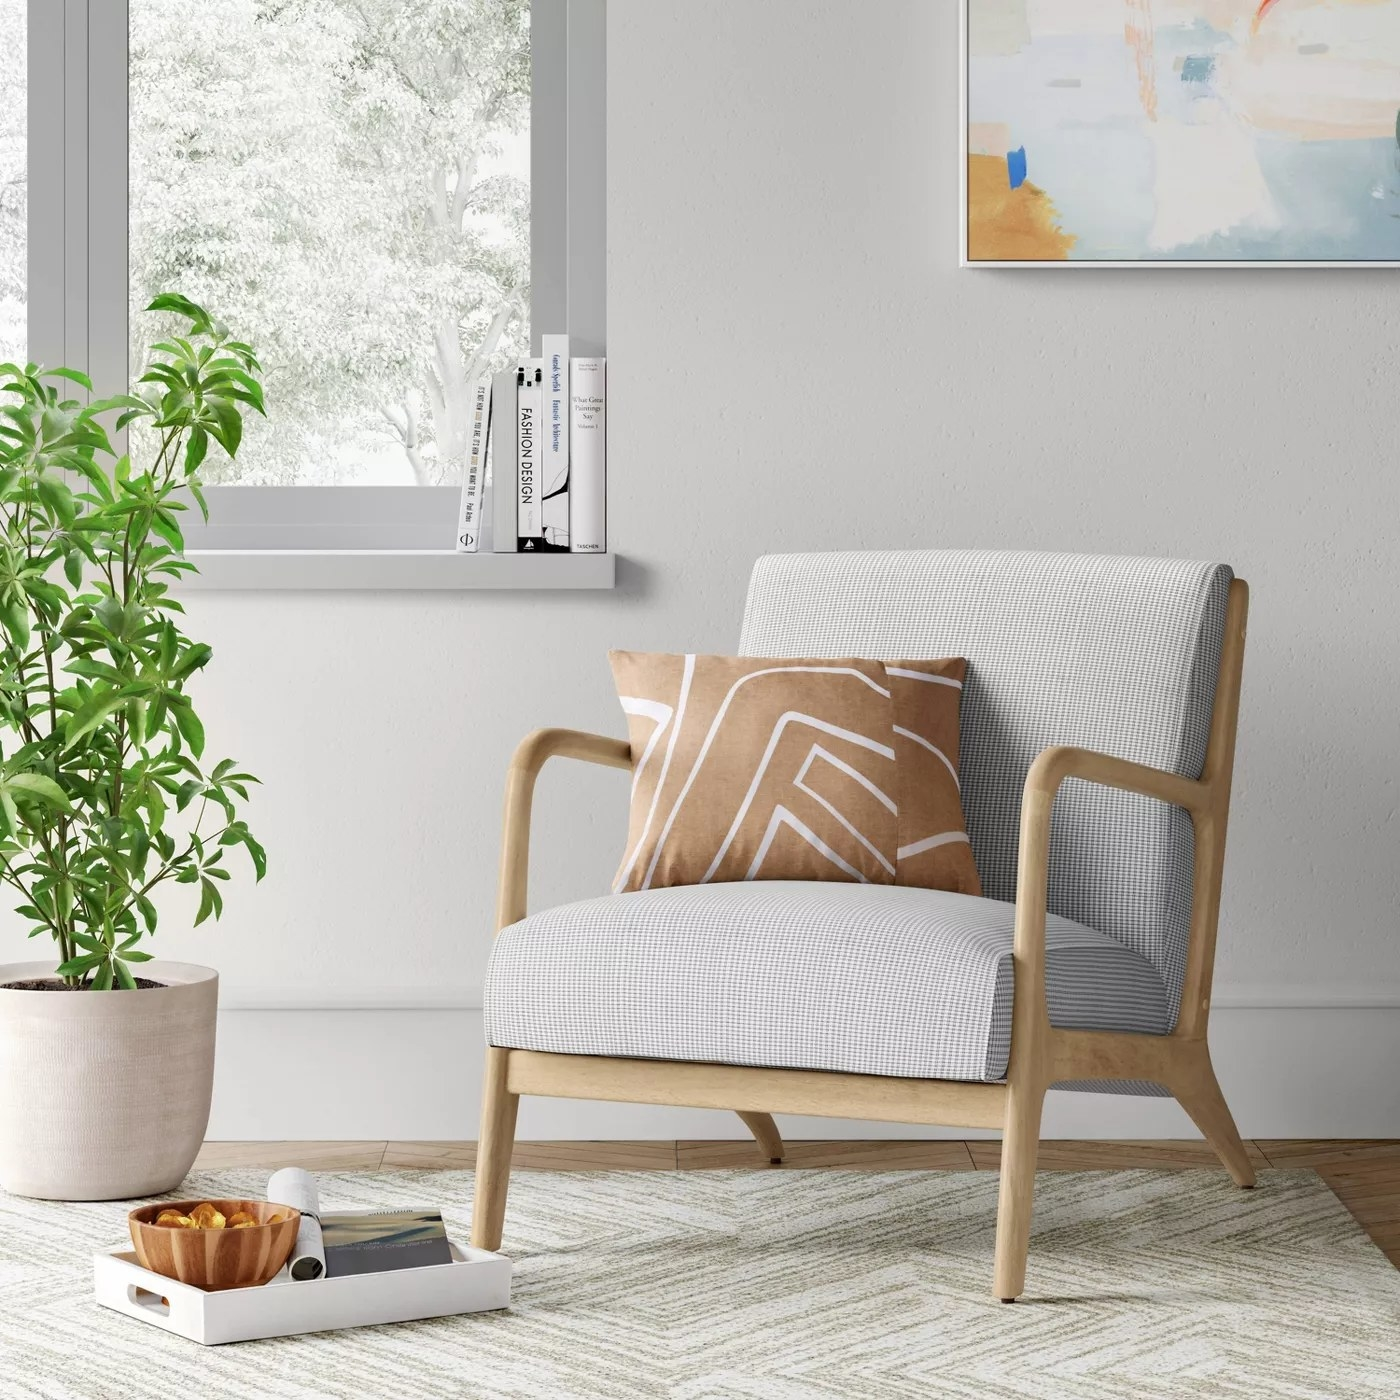 The cushioned armchair with a light wooden frame in a living room